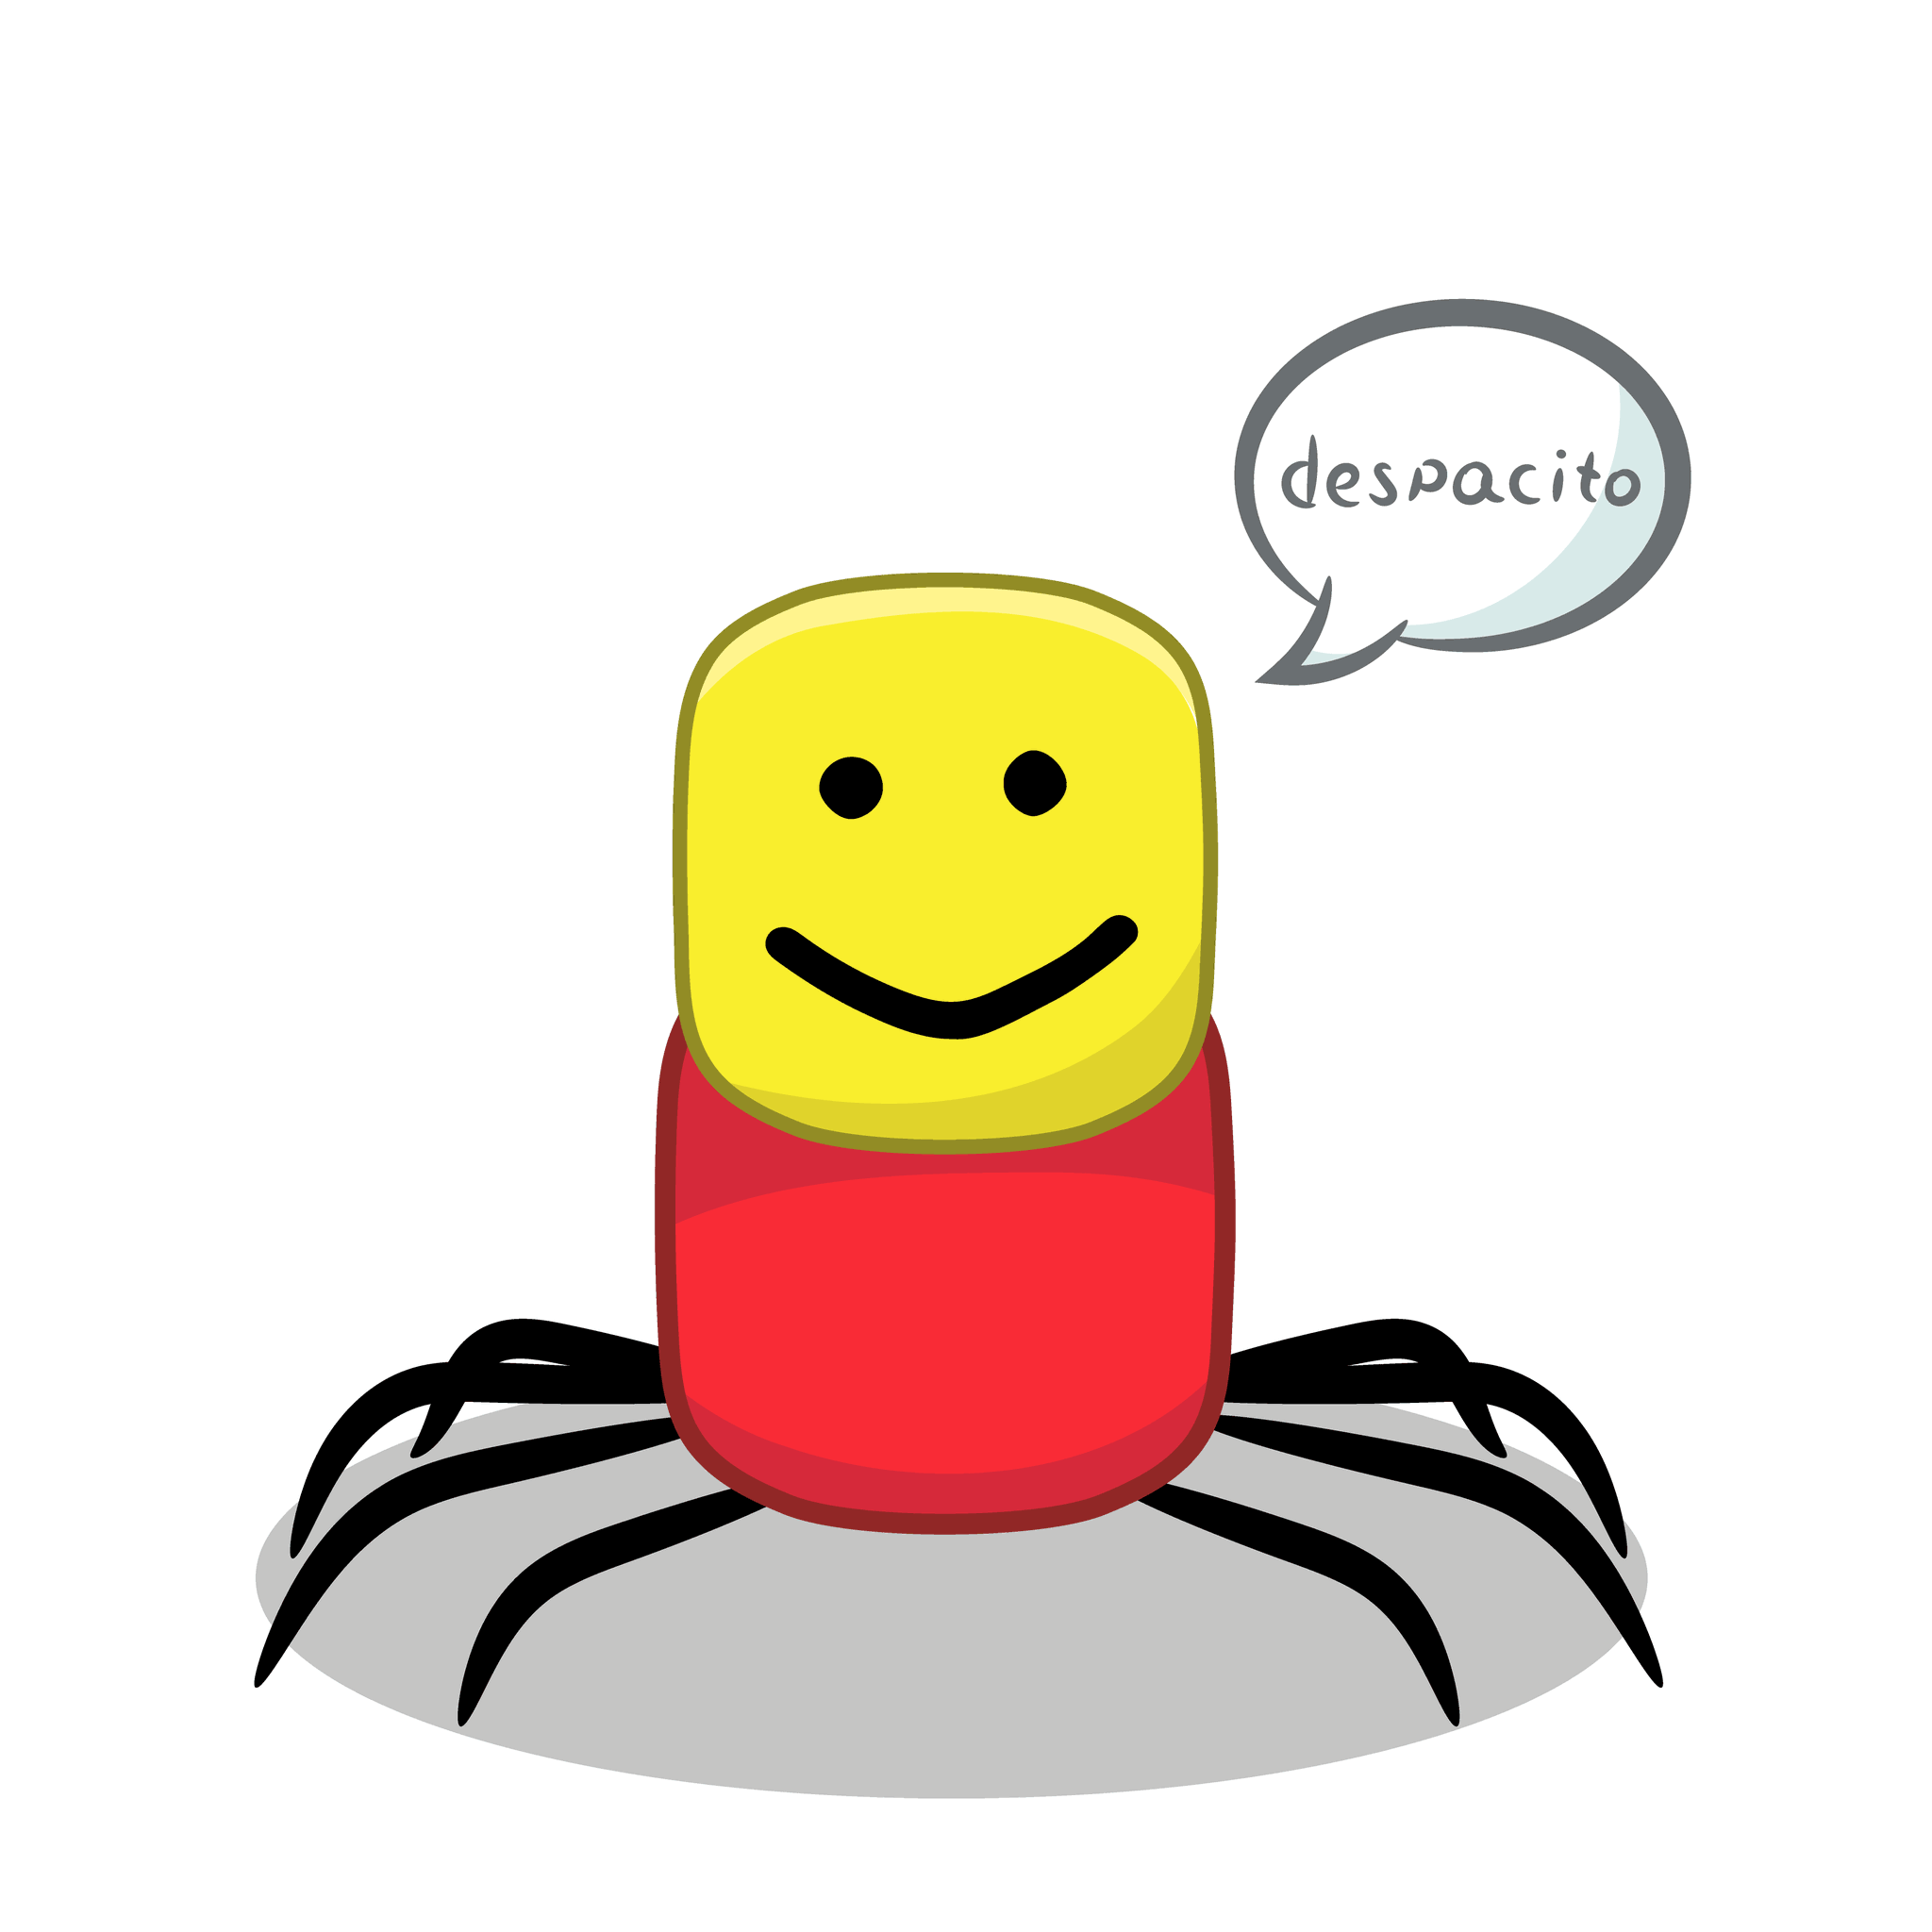 End My Despacito Roblox Lie Star Previous Blondy On Twitter Despacito Roblox Robloxart